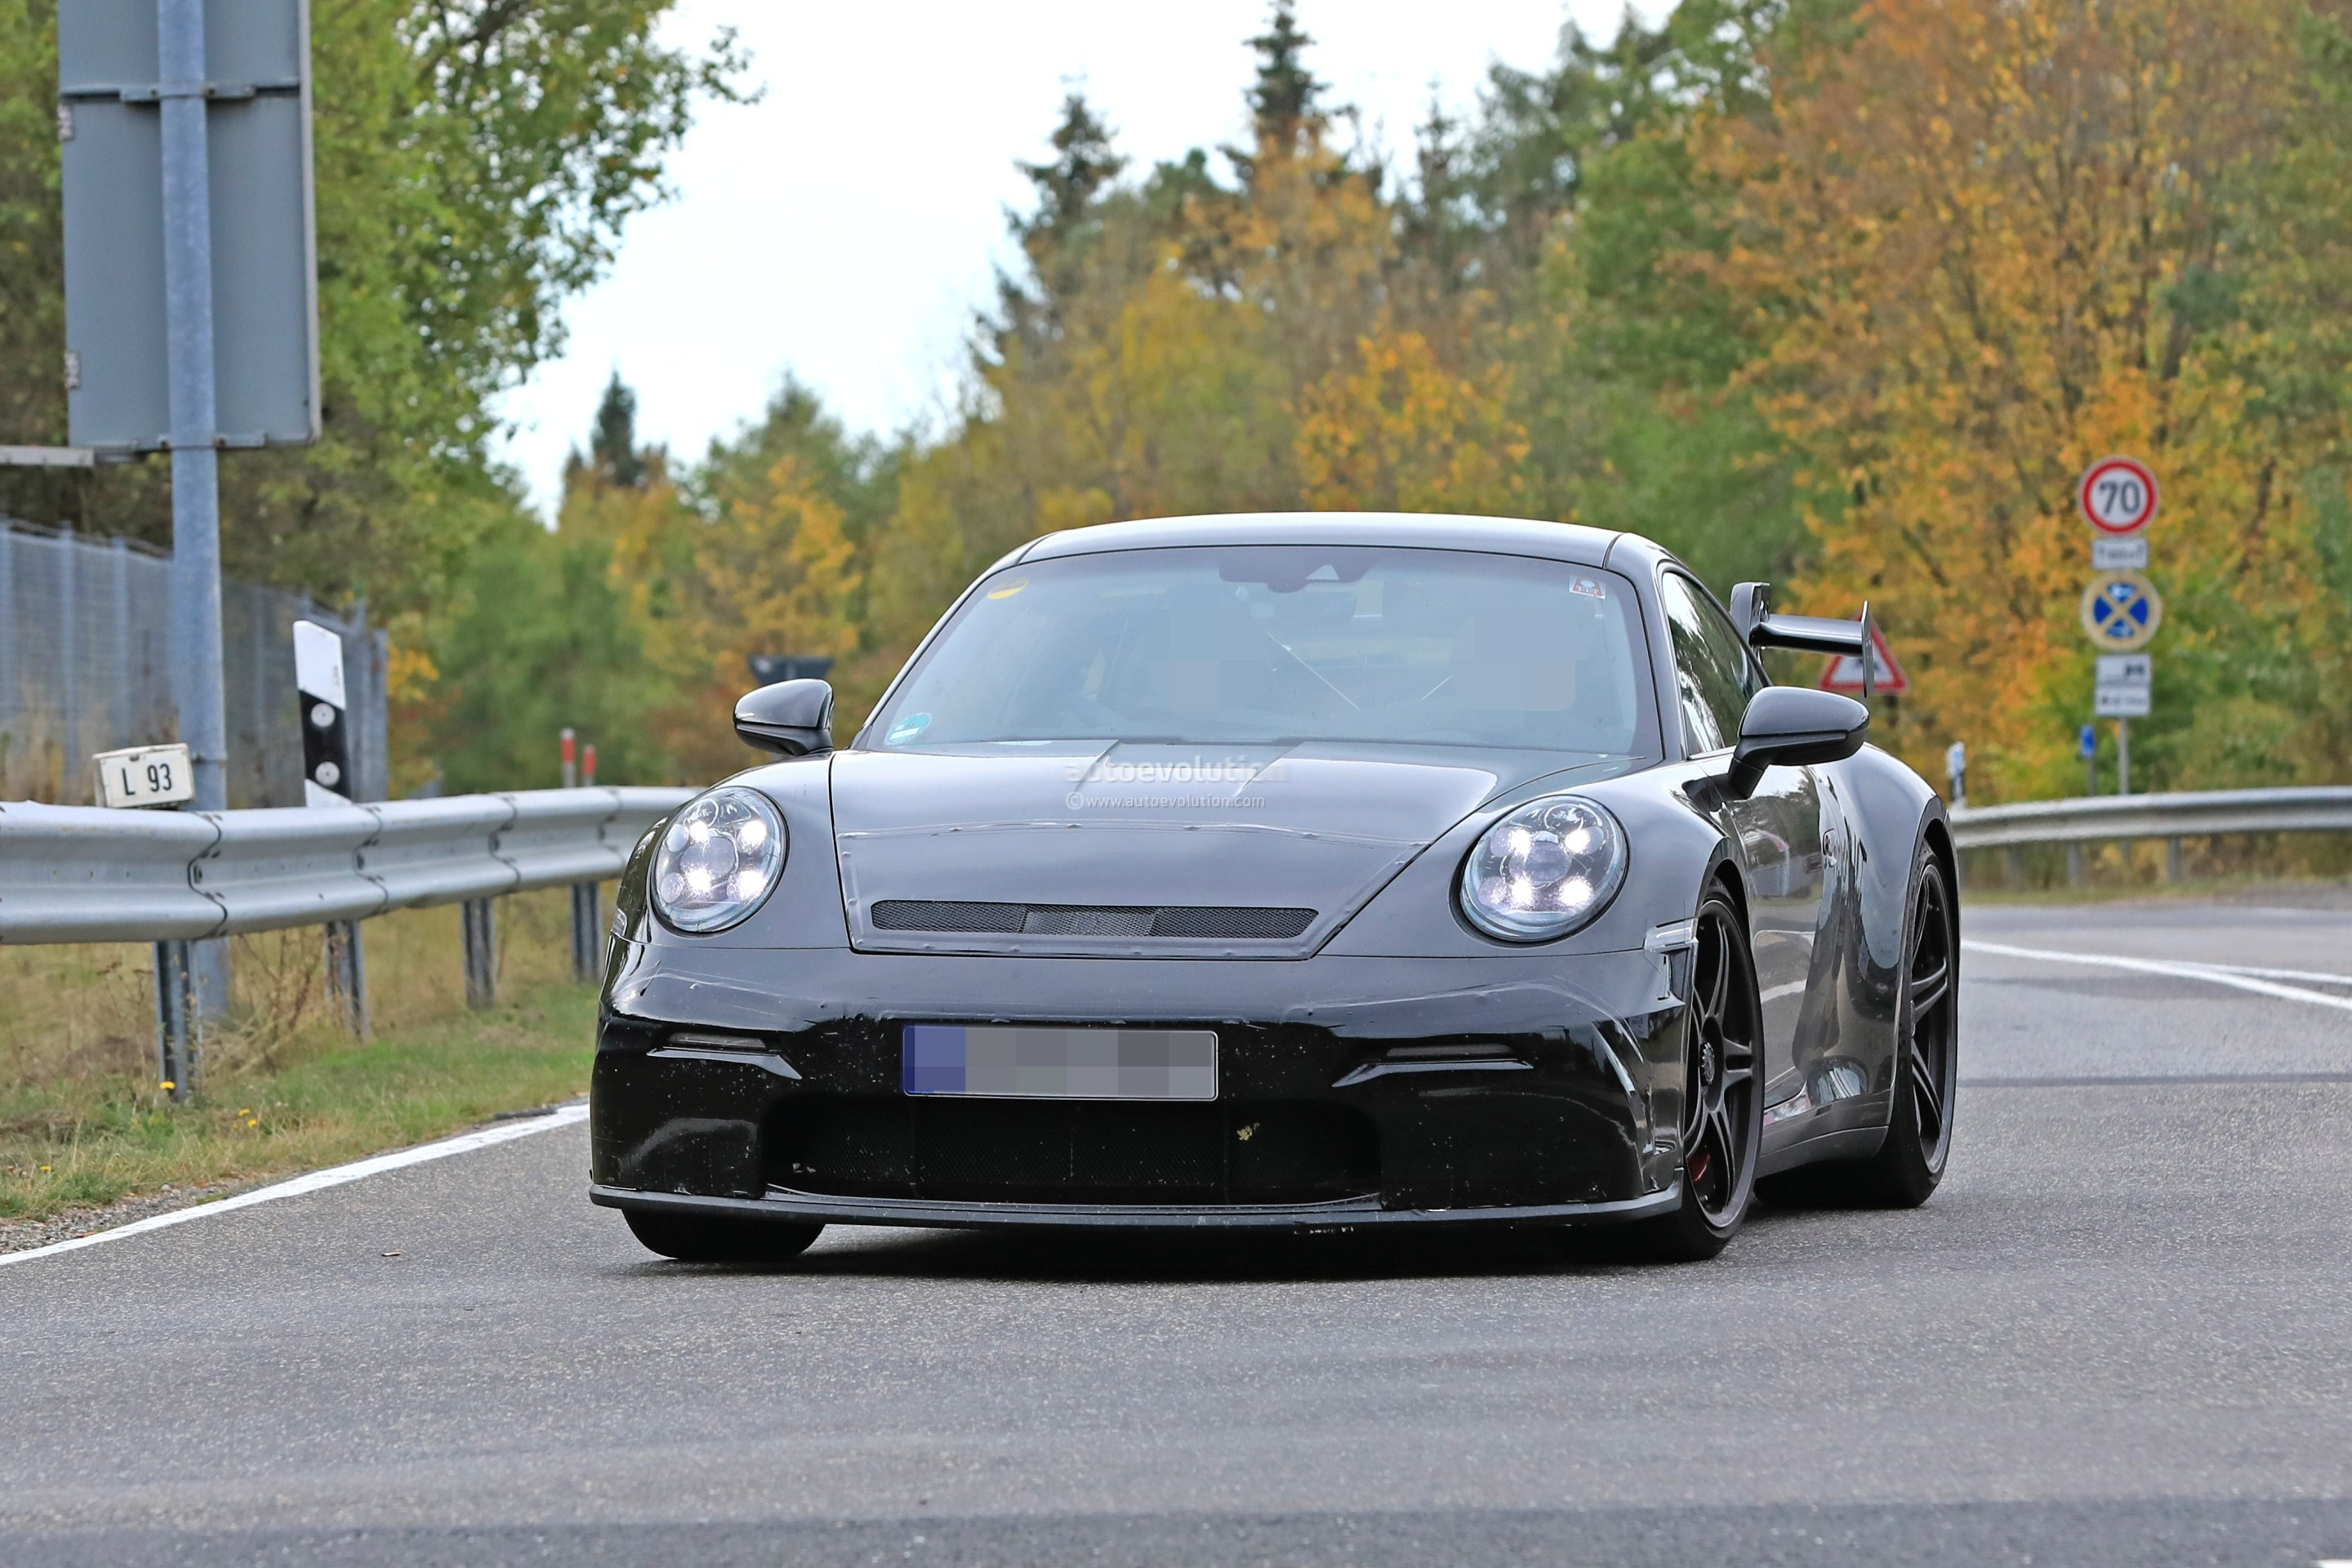 new-2020-p​orsche-911​-gt3-proto​type-shows​-productio​n-design_4